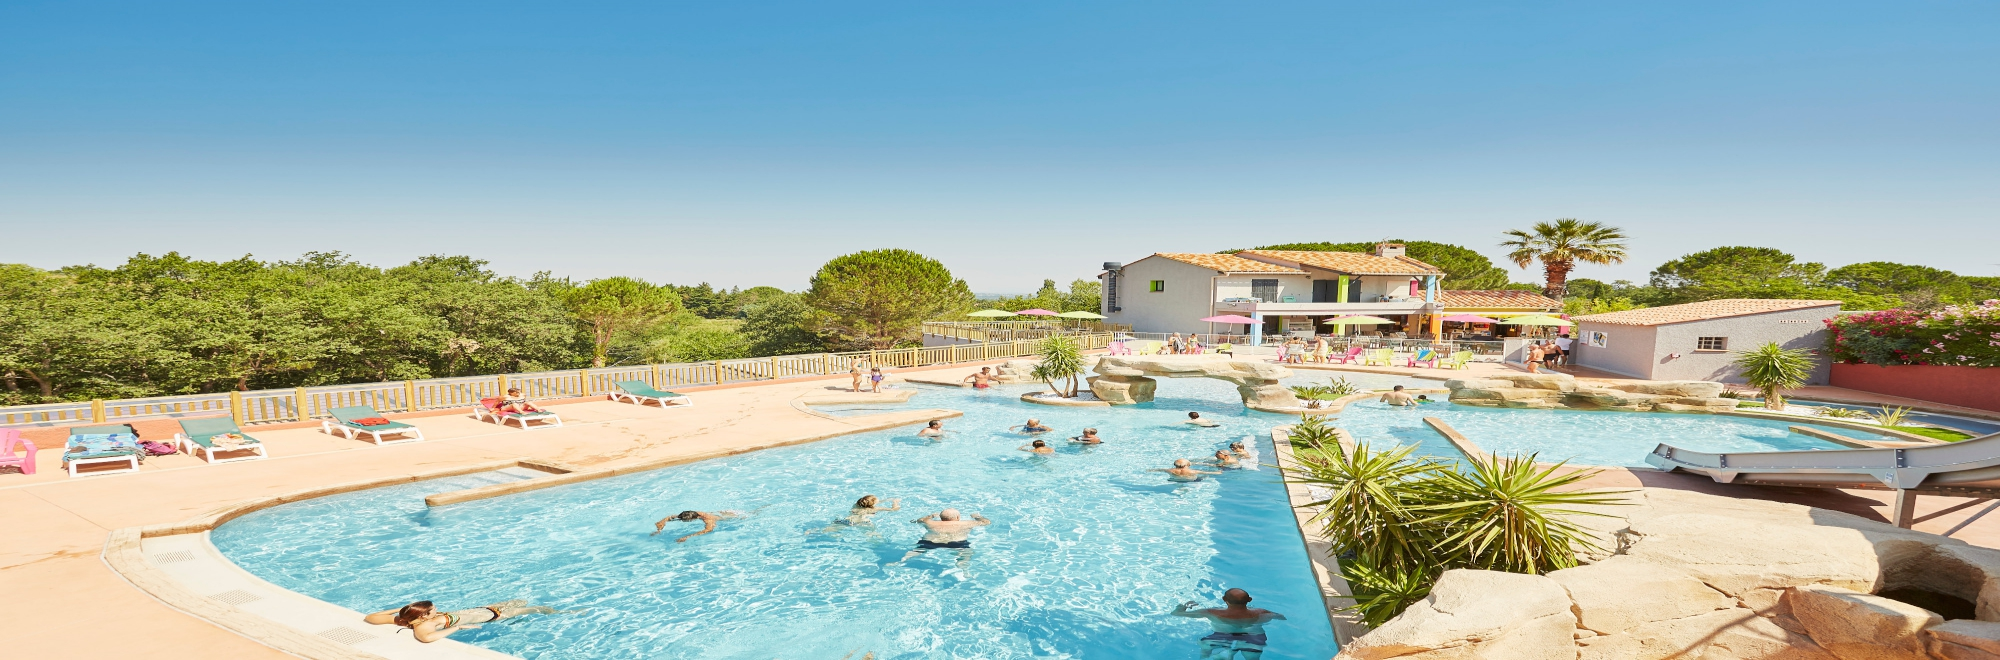 CAMPING-LES-ALBERES---piscine-©A